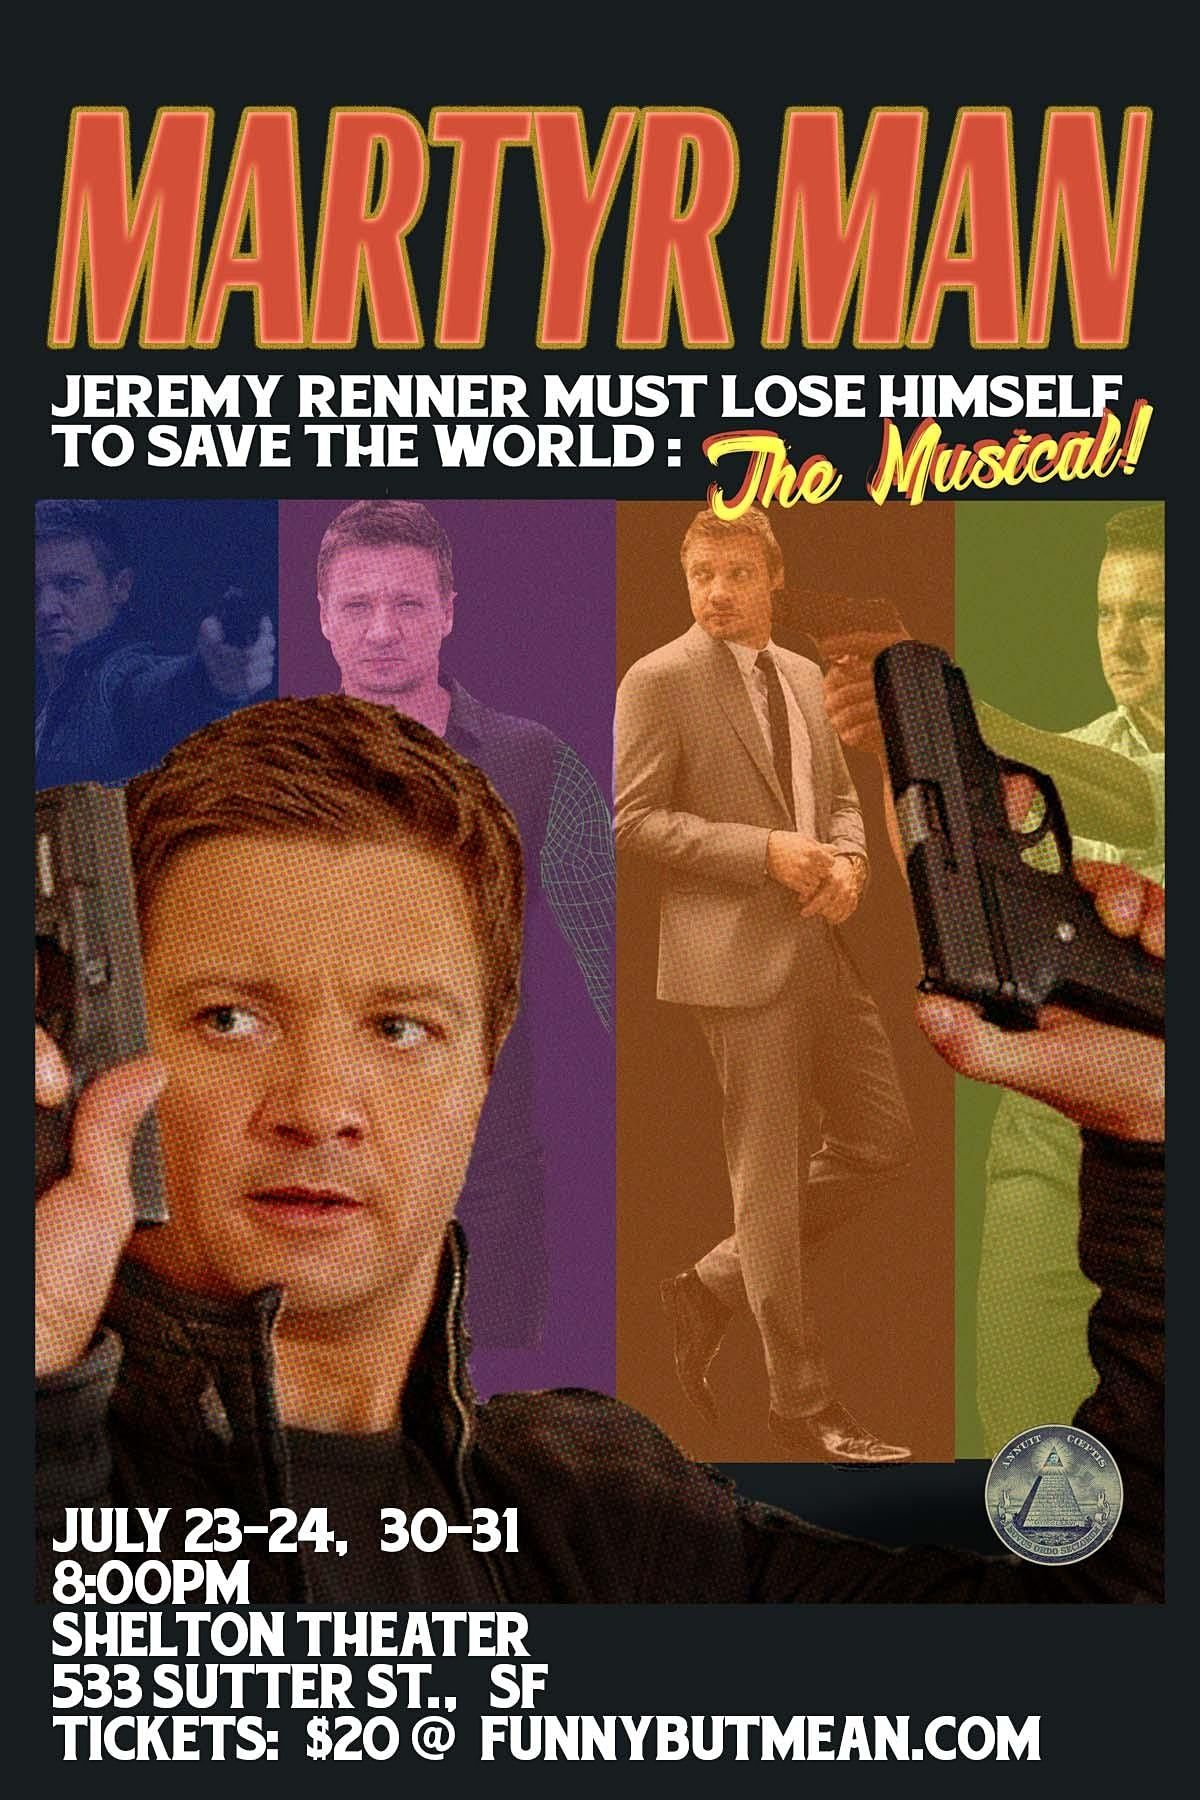 Martyr Man: Jeremy Renner Must Lose Himself And Save The World: The Musical